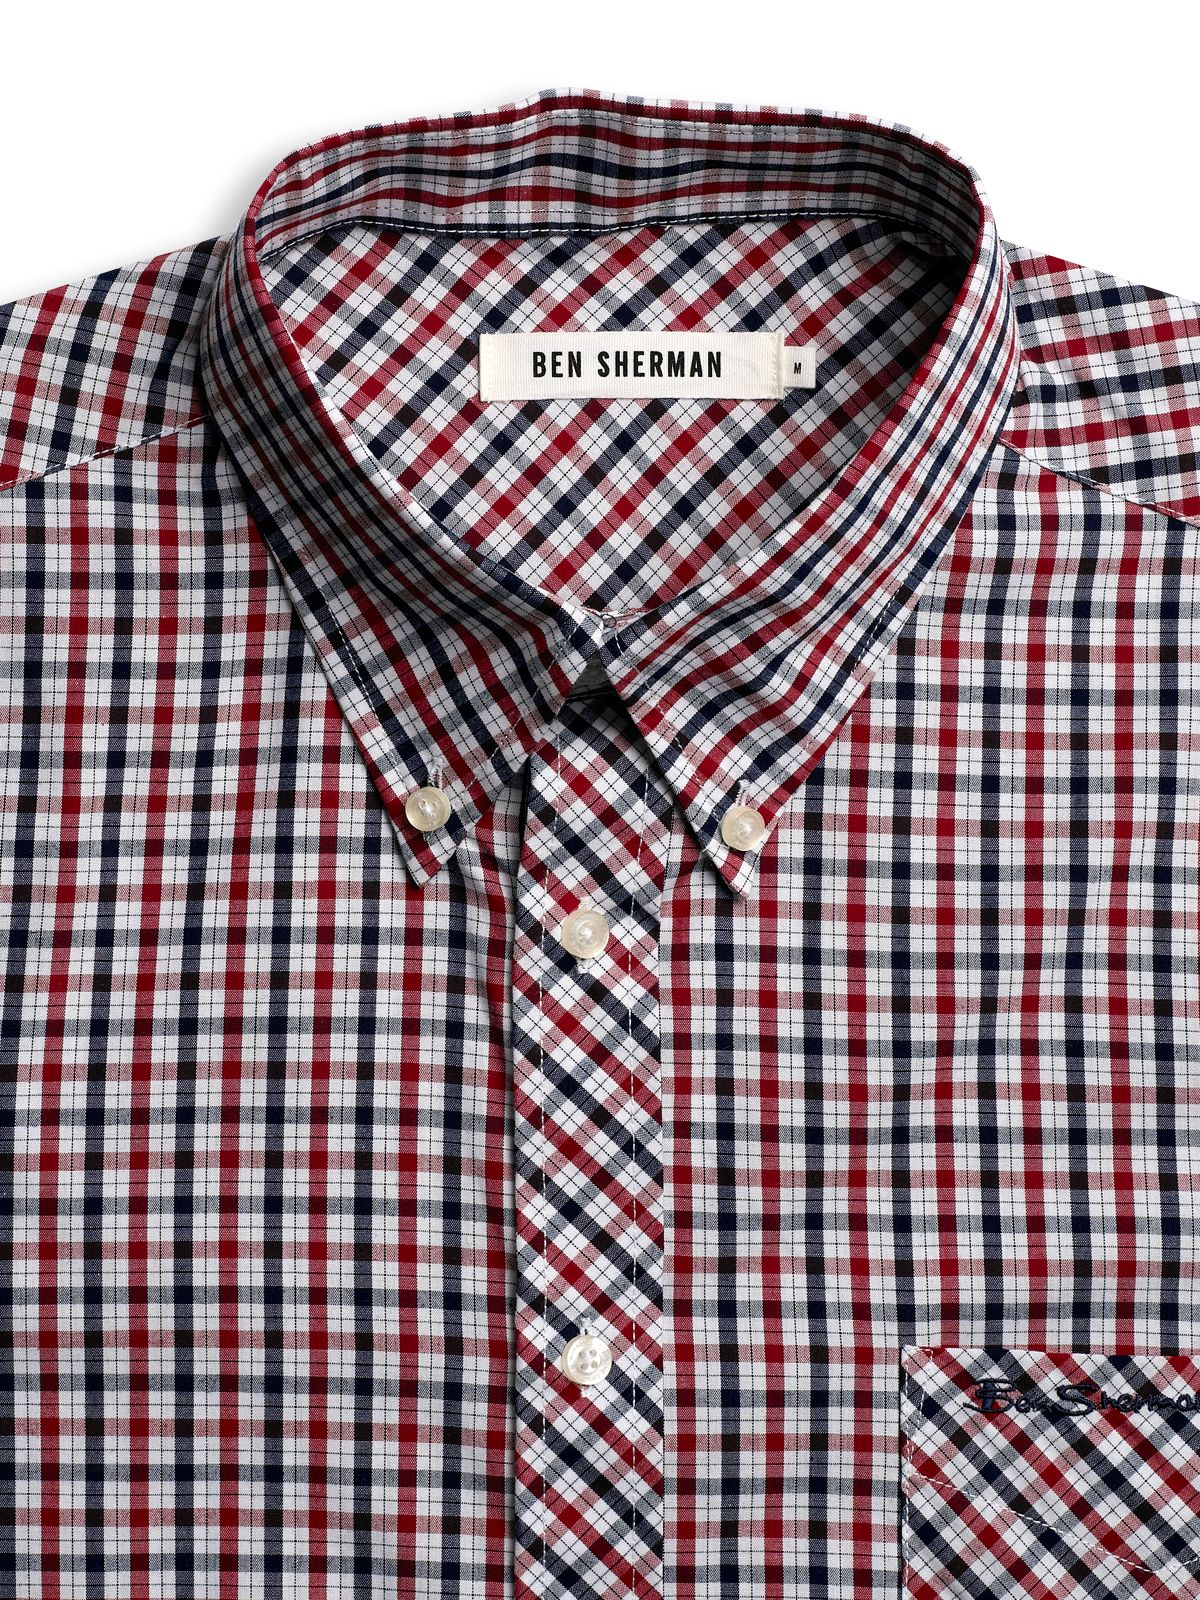 Ben Sherman Cotton Plaid Shirt In Red For Men Lyst